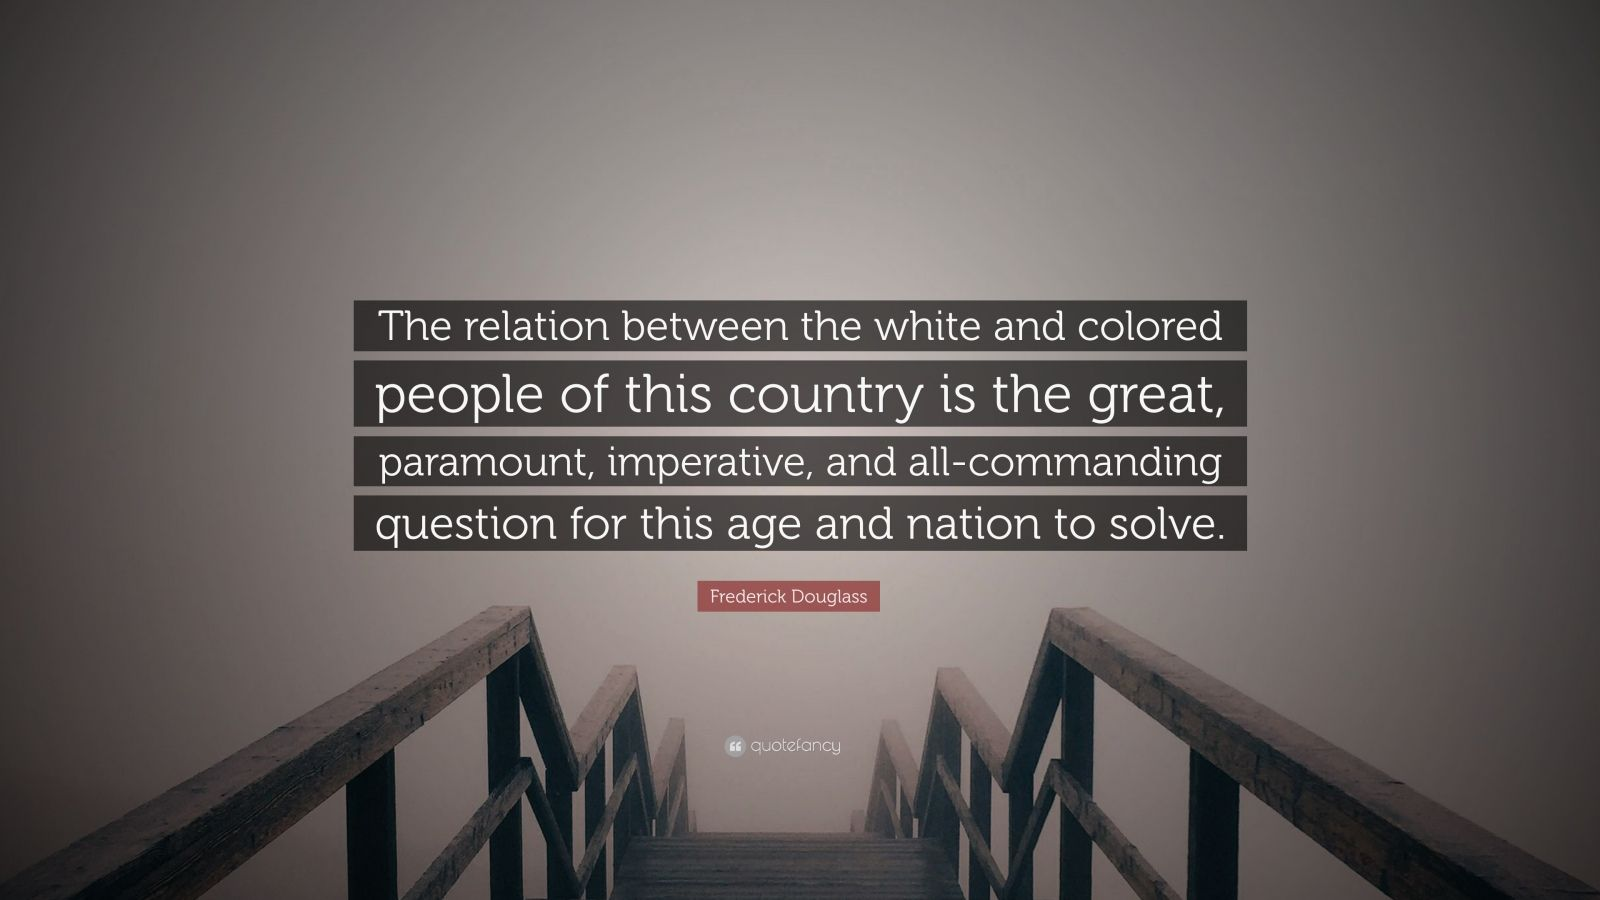 """Frederick Douglass Quote: """"The relation between the white and colored people of this country is the great, paramount, imperative, and all-commanding question for this age and nation to solve."""""""